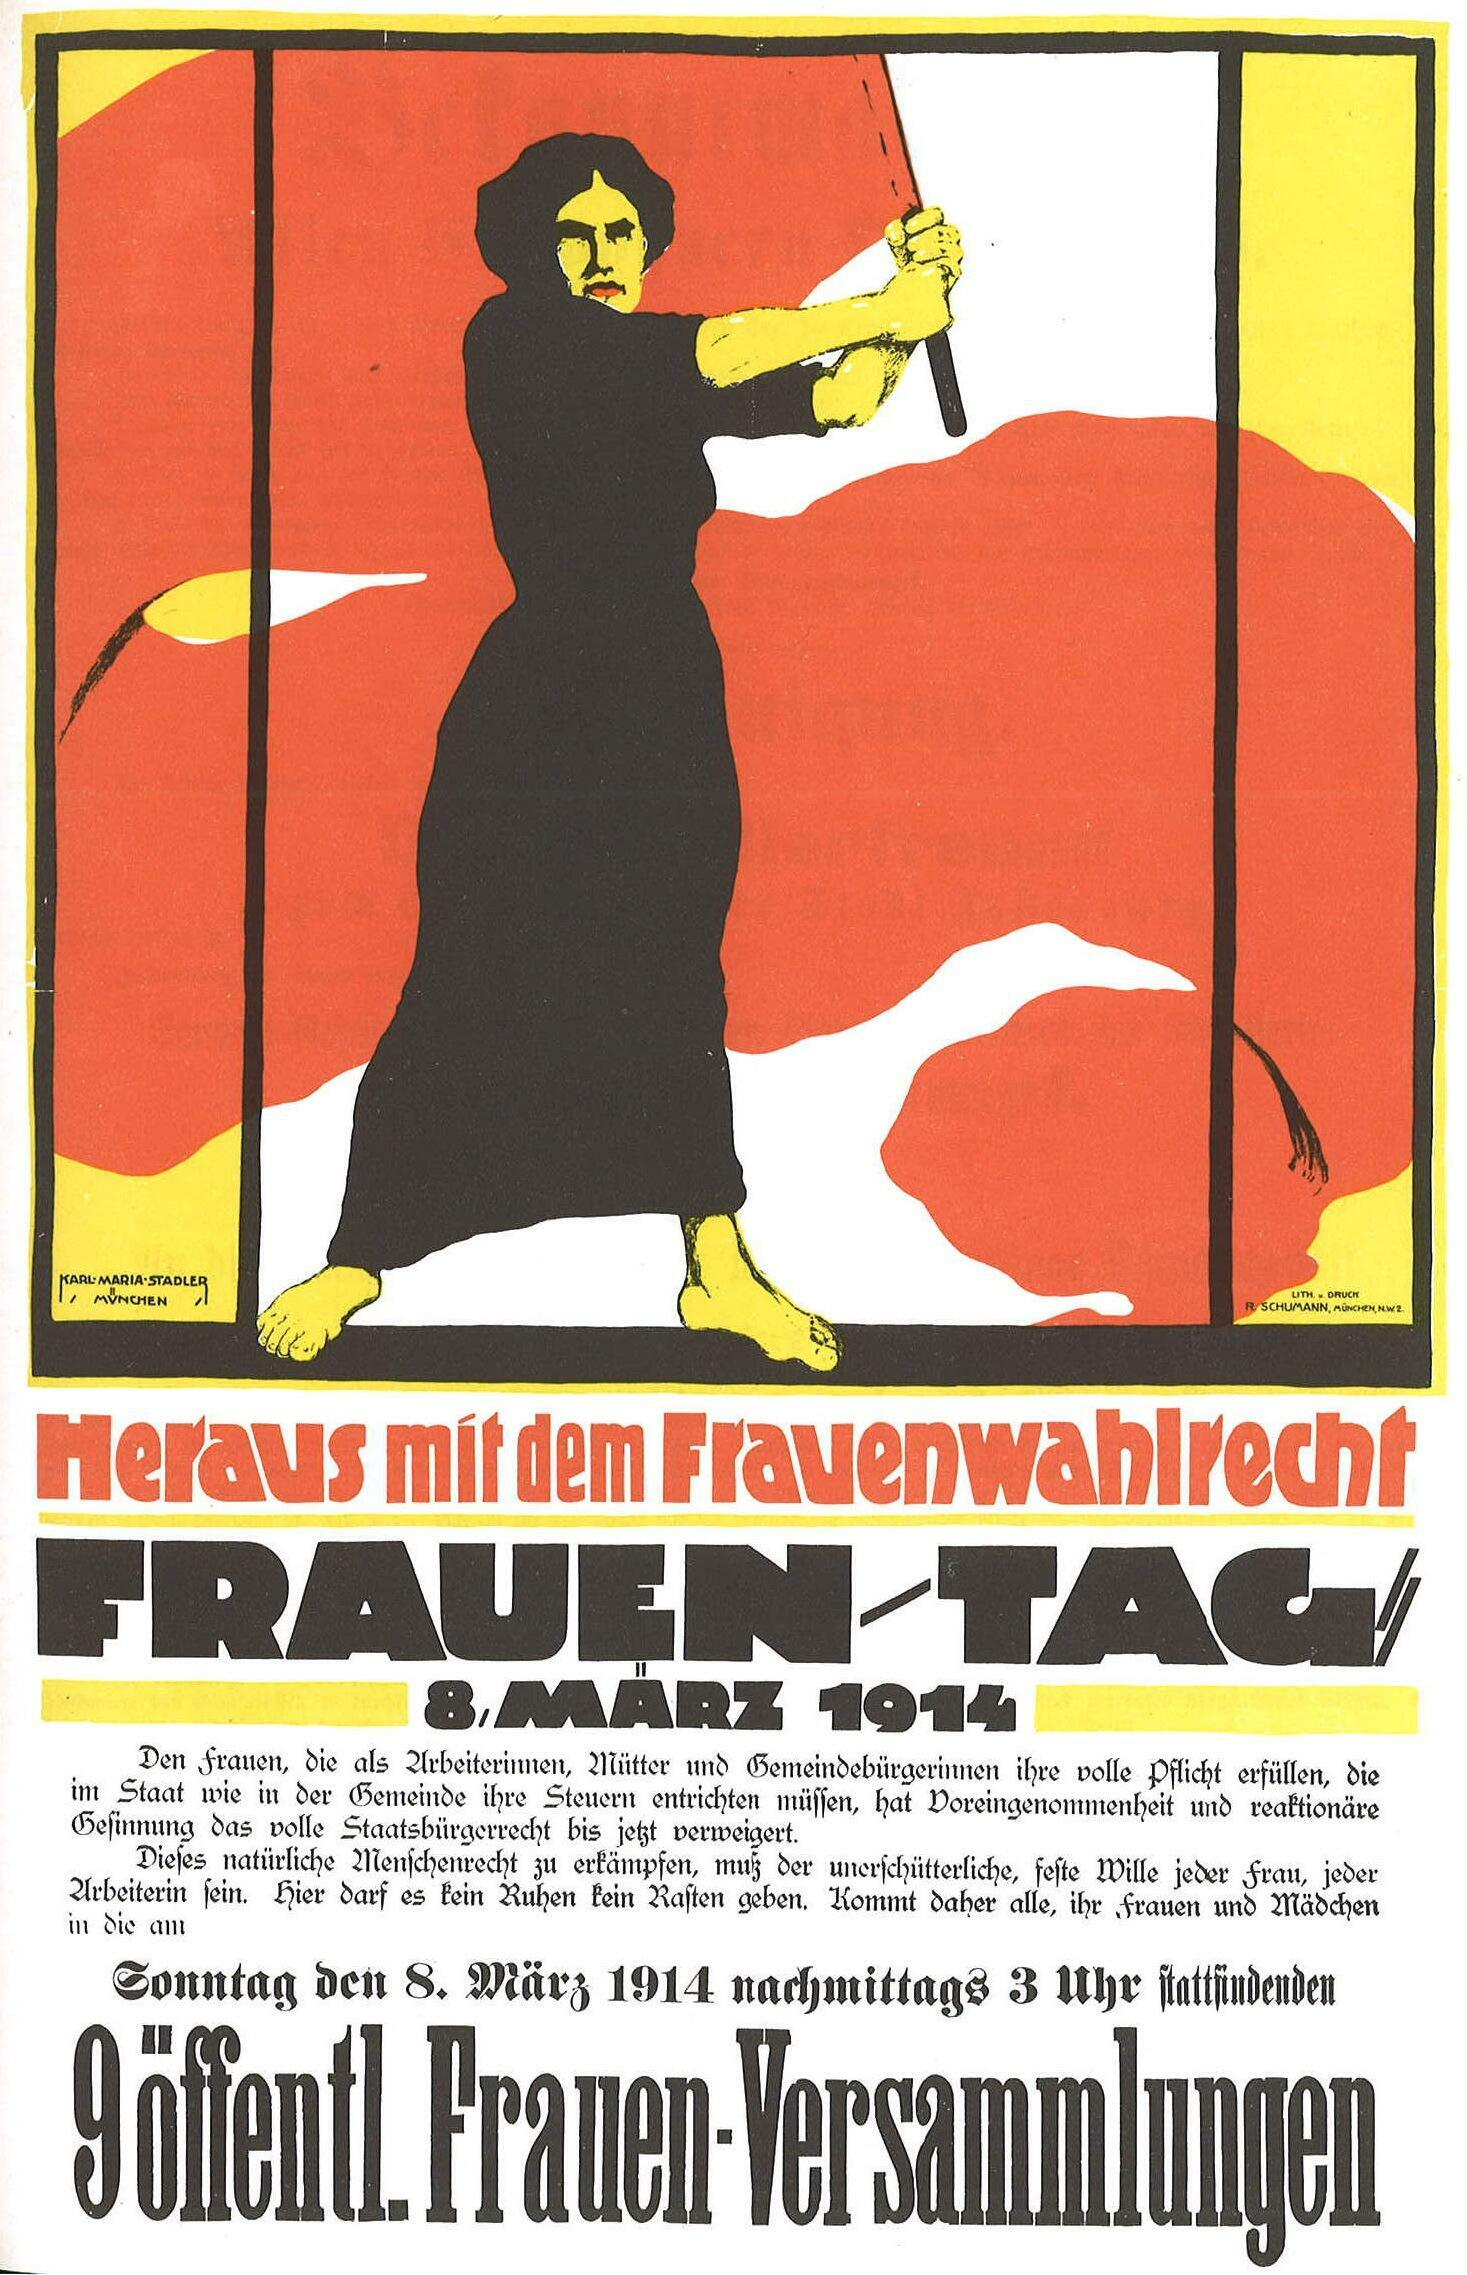 A German poster, which was banned, for International Women's Day in 1914